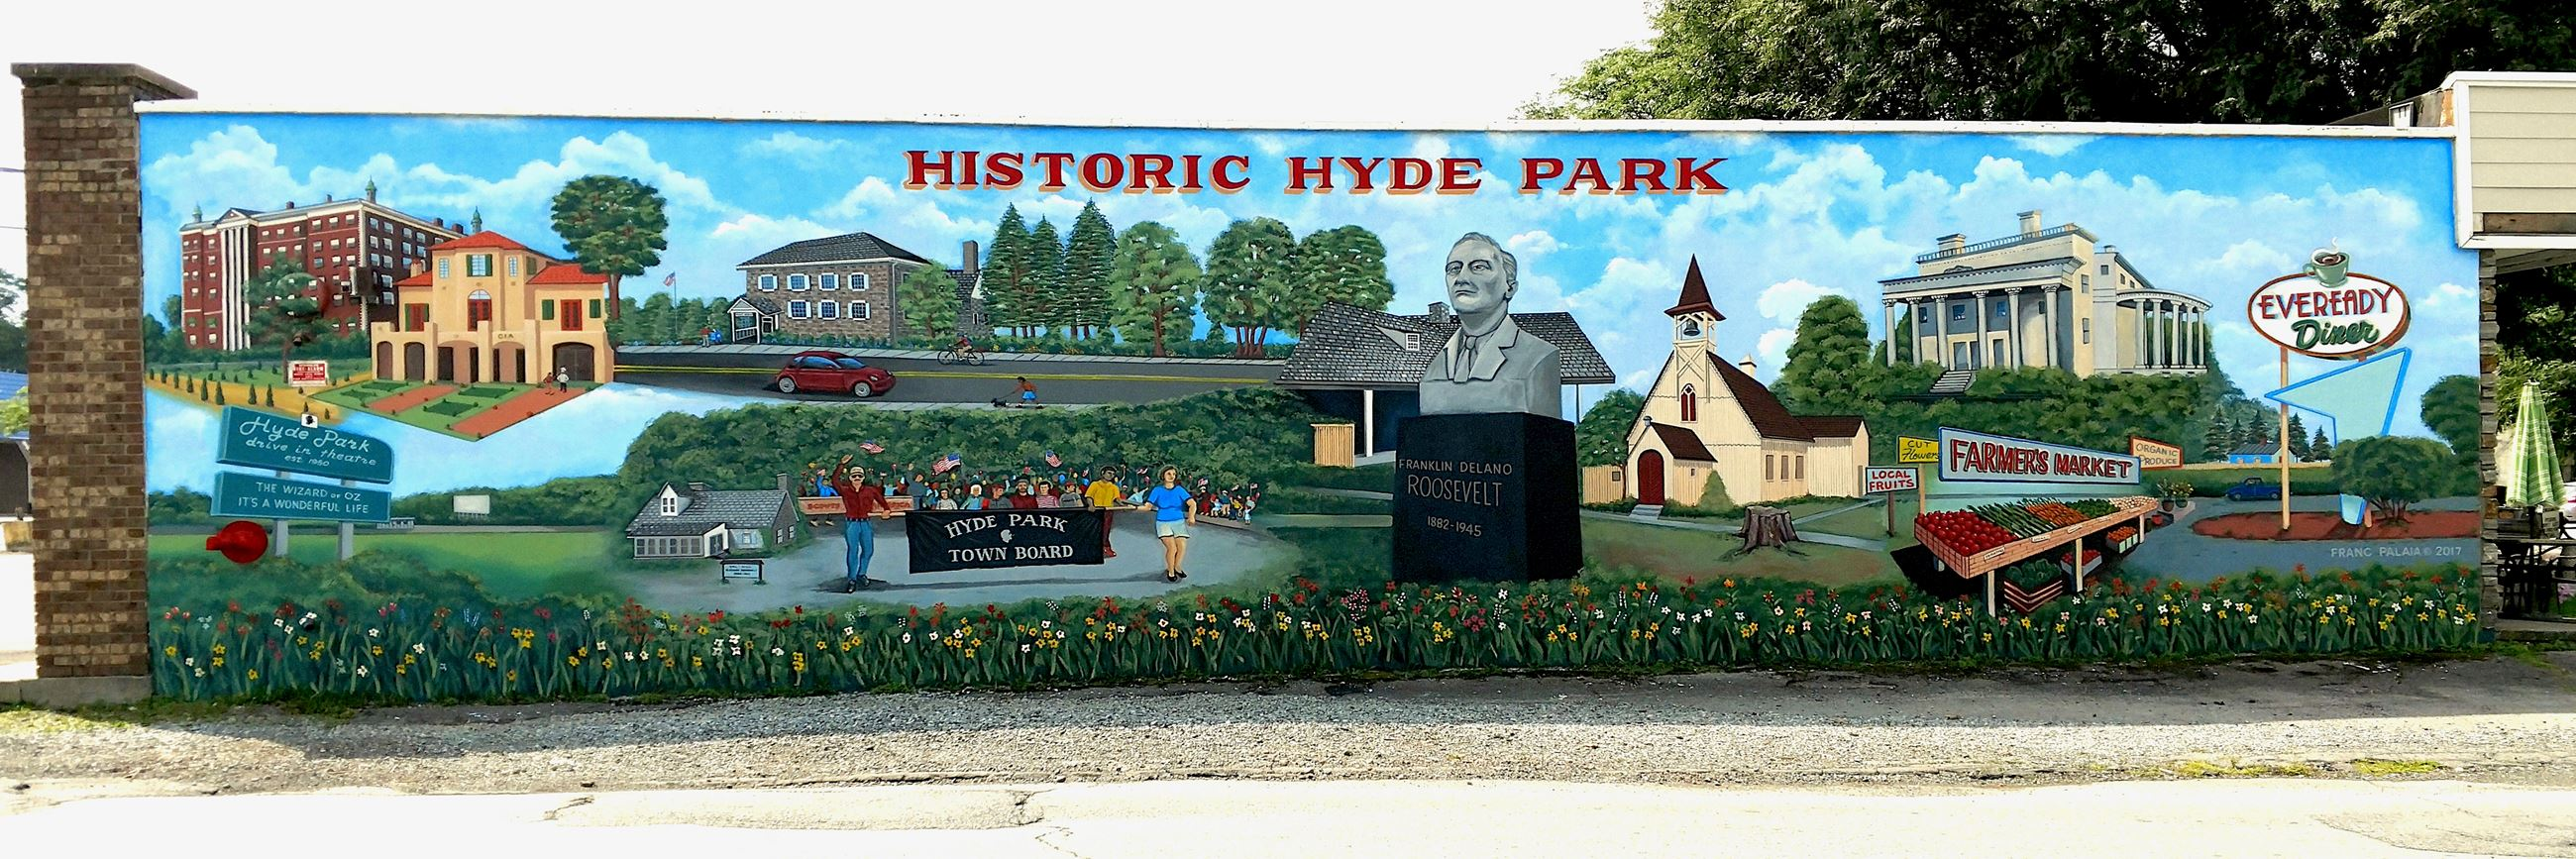 Hyde Park Mural by Franc Palaia © 2017